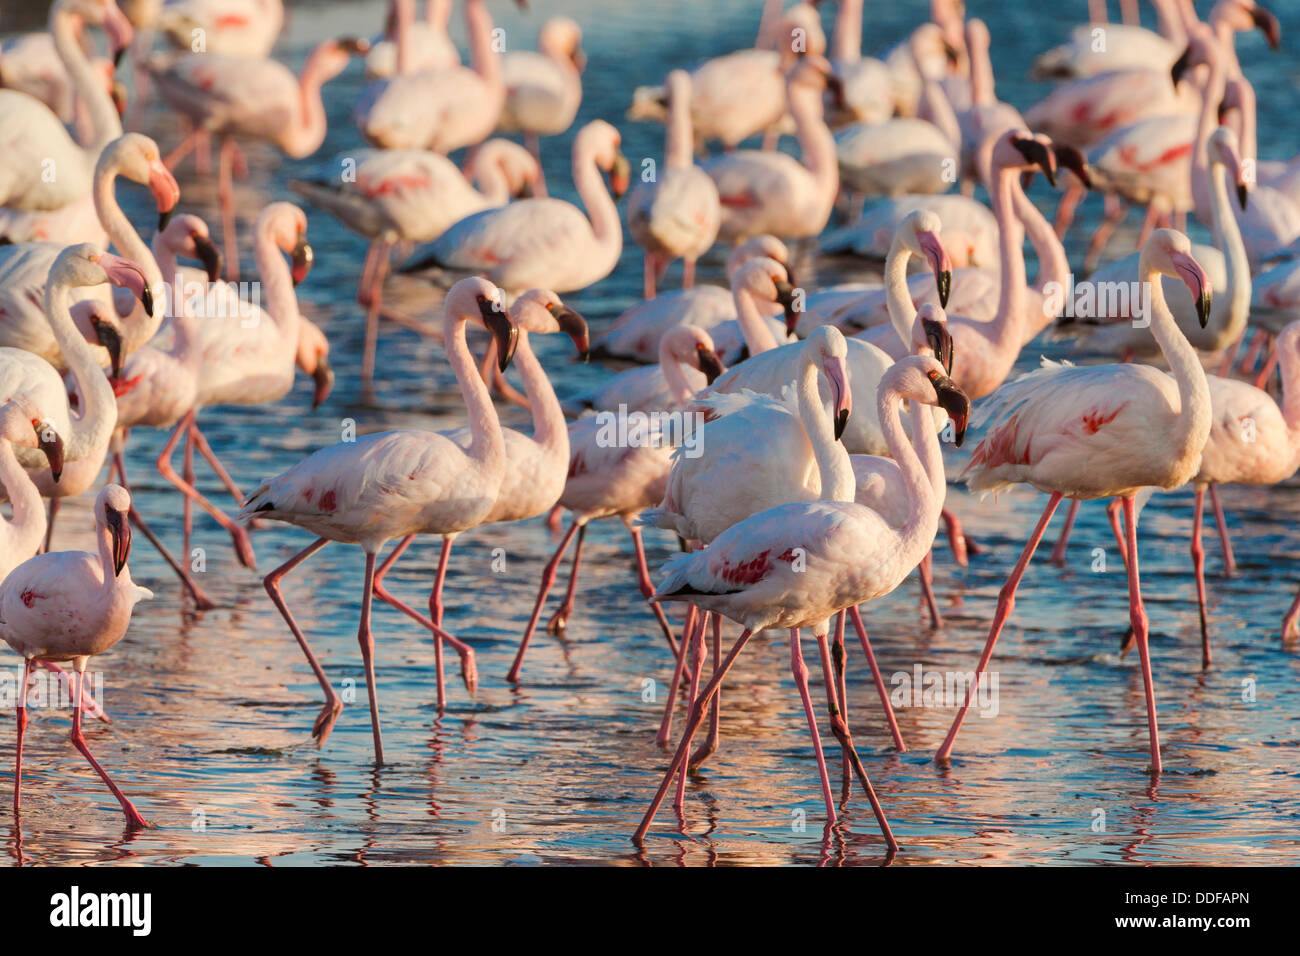 Greater flamingoes (Phoenicopterus ruber) and Lesser flamingoes (Phoenicopterus minor), Walvis Bay Lagoon, Namibia, - Stock Image